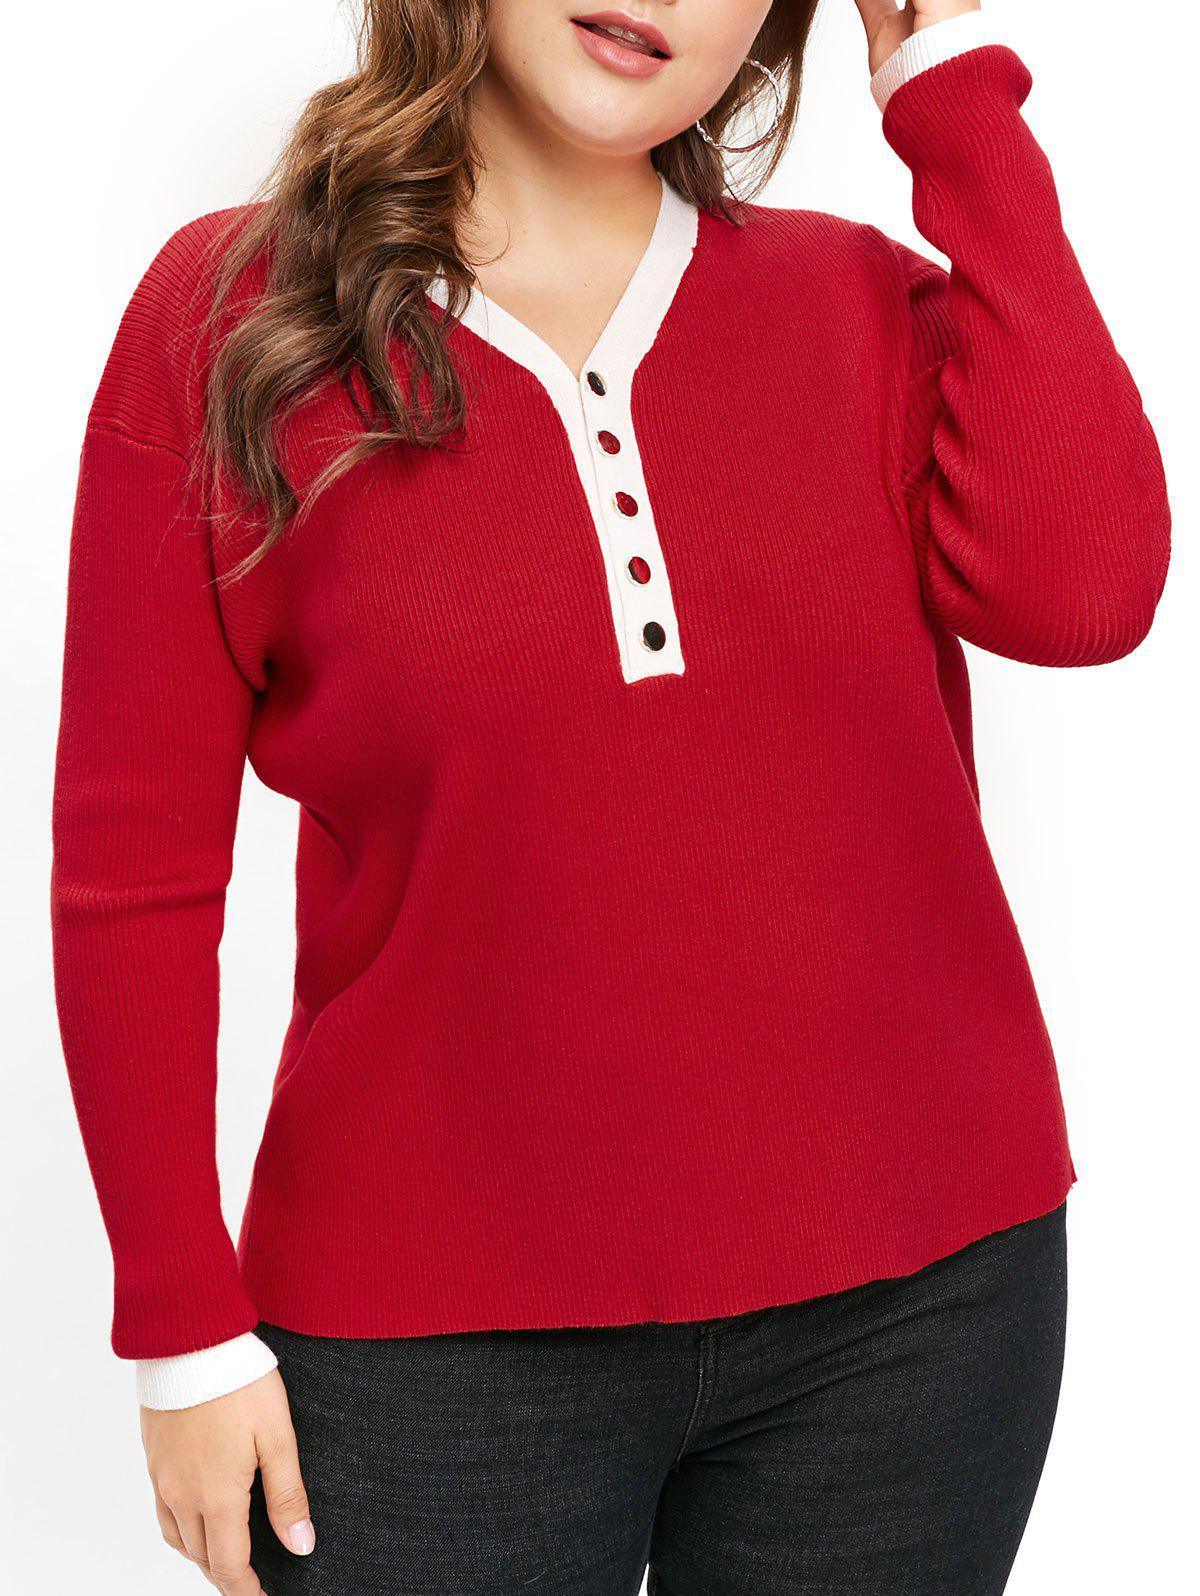 Discount Plus Size Two Tone Sweater with Half Buttons